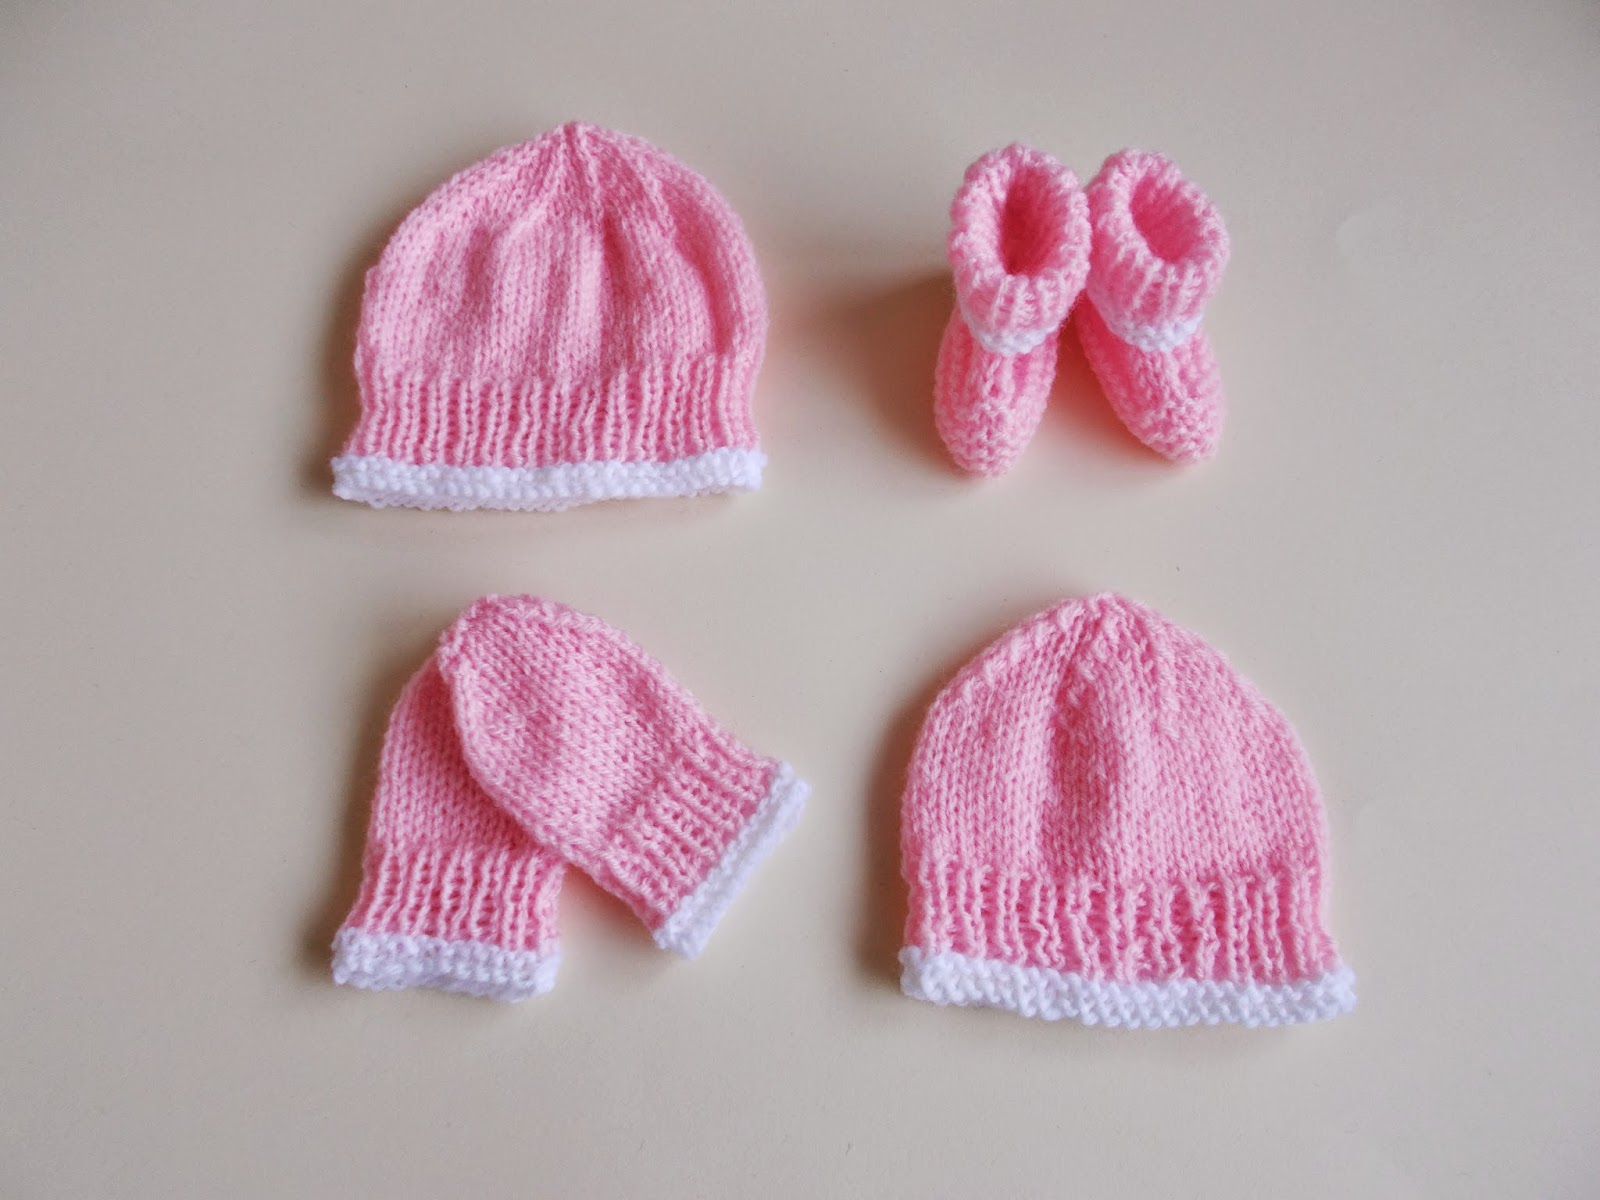 Knitting Pattern For Baby Hat And Mittens : mariannas lazy daisy days: Premature & Newborn Baby Hat, Mittens &am...